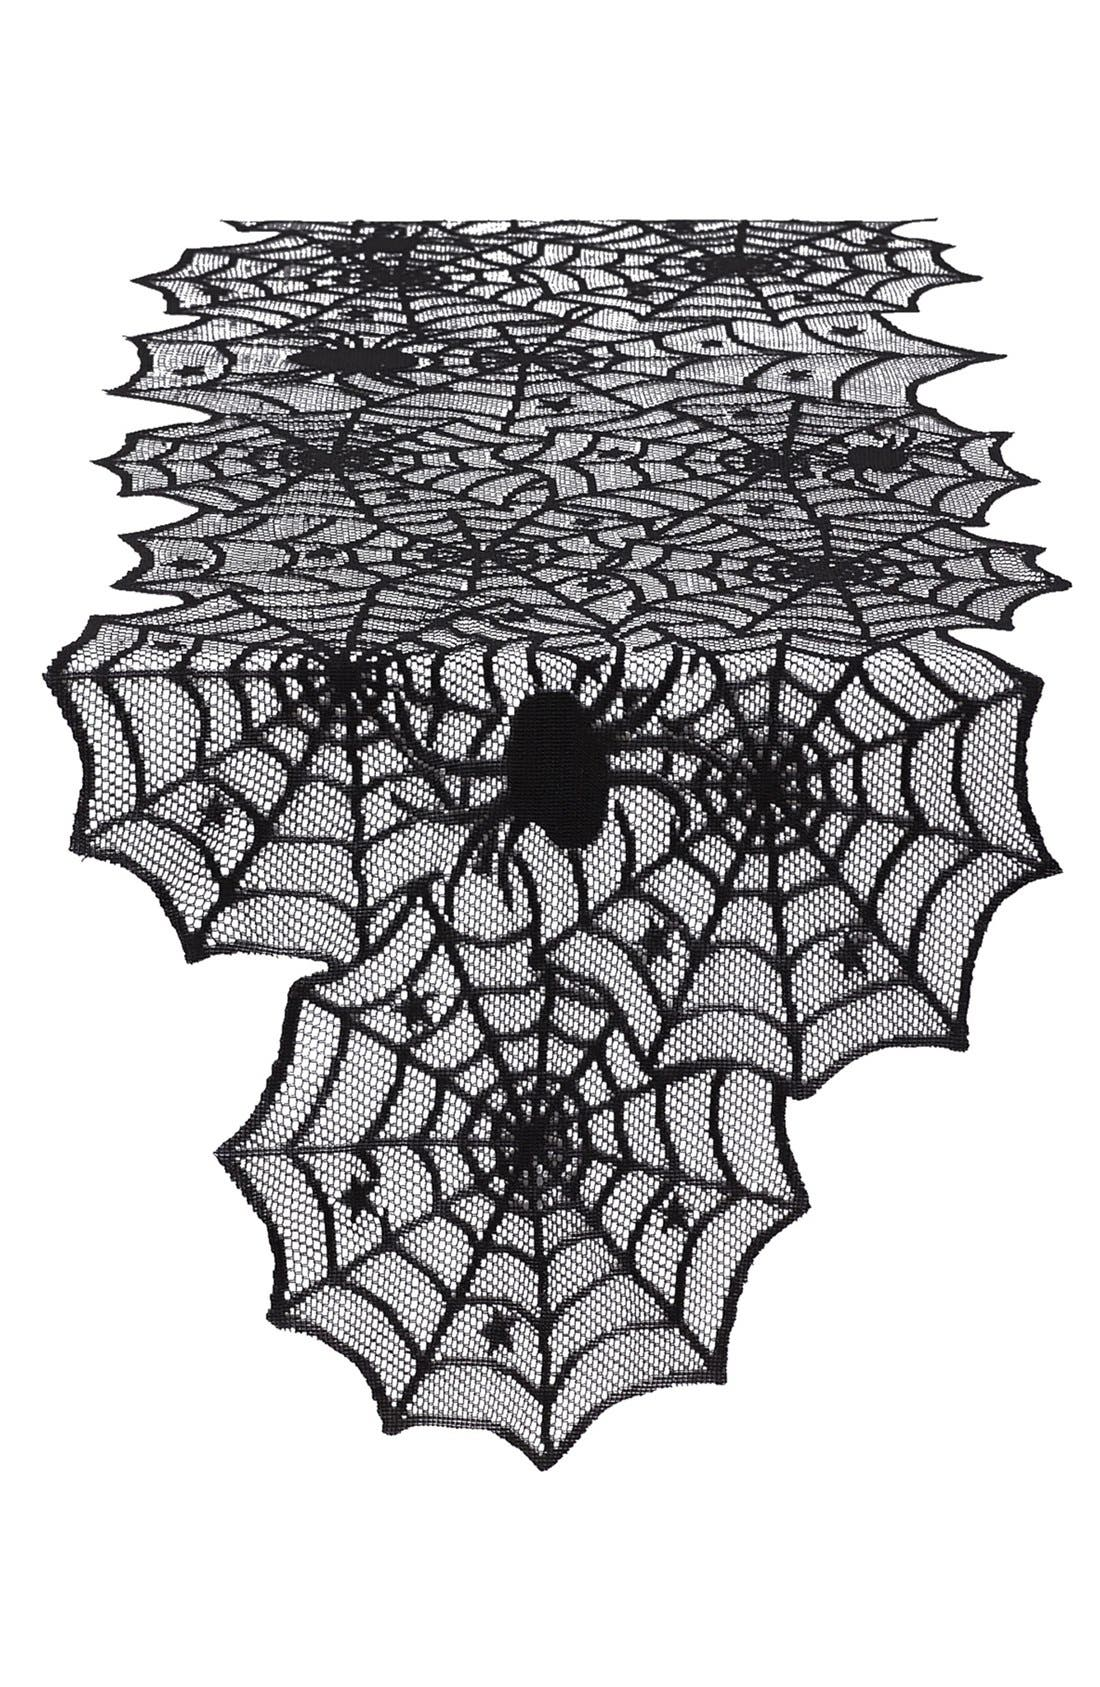 Alternate Image 1 Selected - Design Imports Spider Web Lace Table Runner